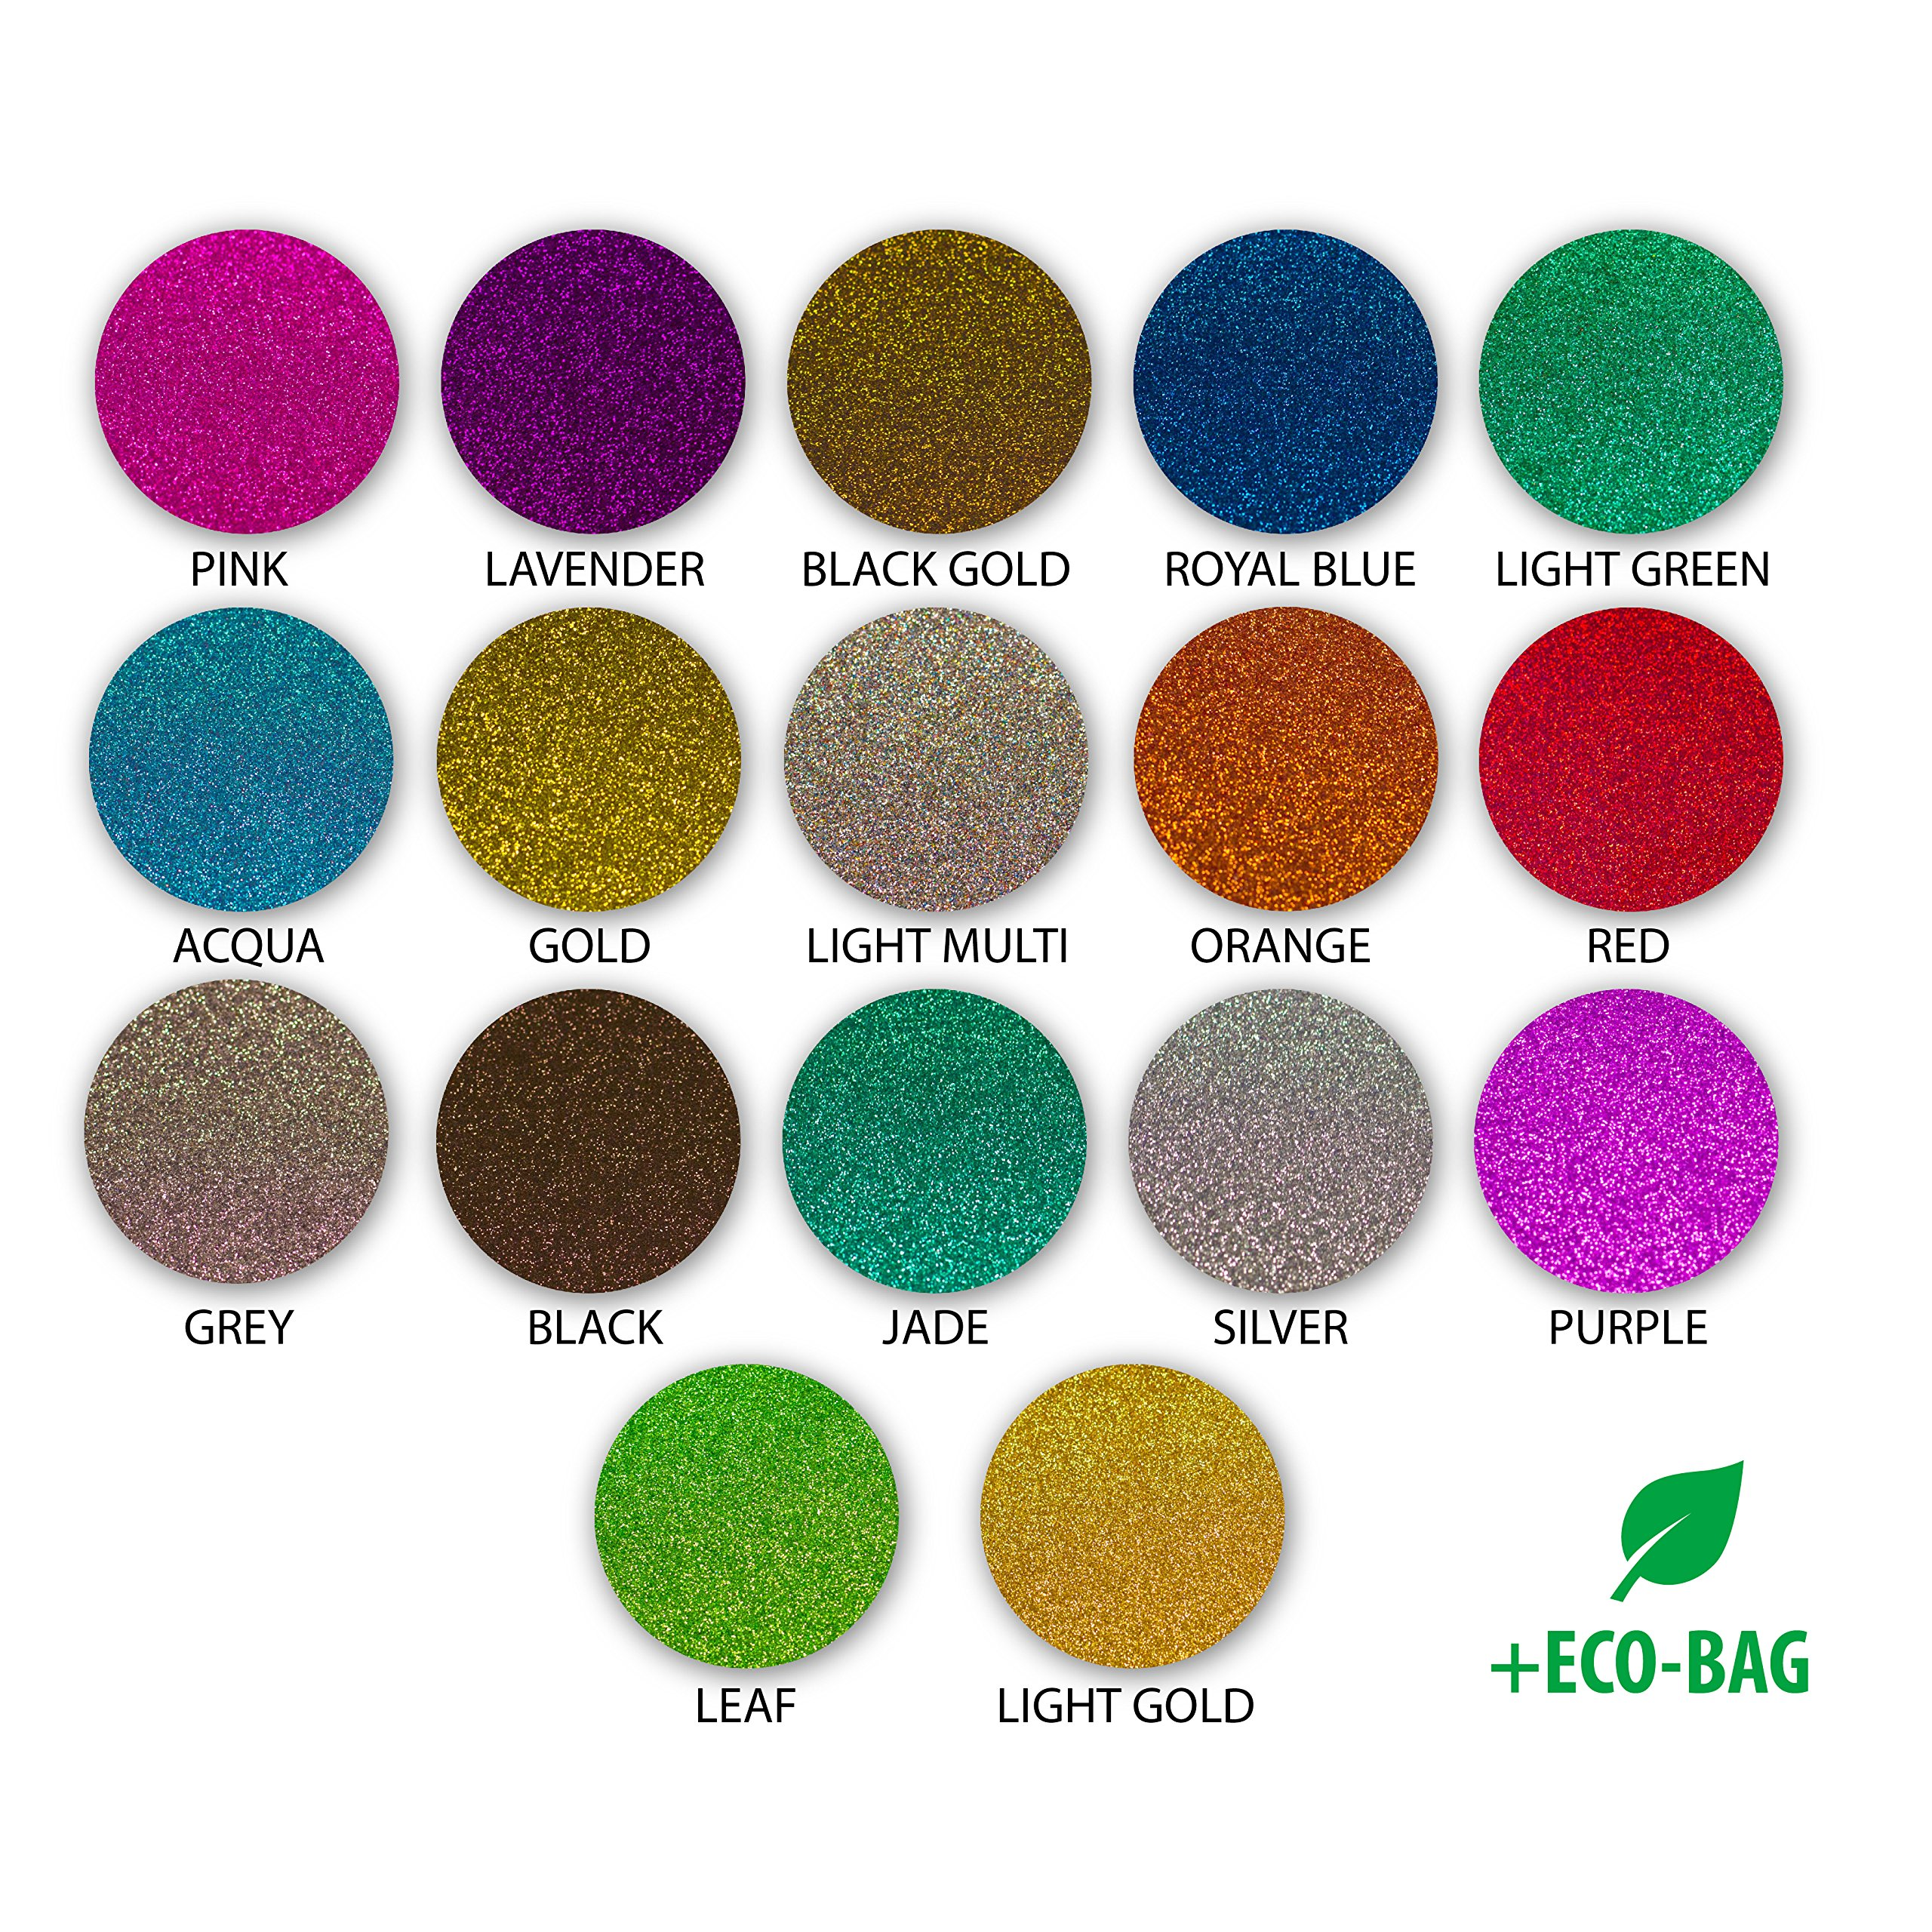 Glitter Heat Transfer Vinyl - 17 Variety Pack 12x10 inch HTV Sheets - A Starter Bundle that is Easy to Weed HTV with Glitter for your T Shirts